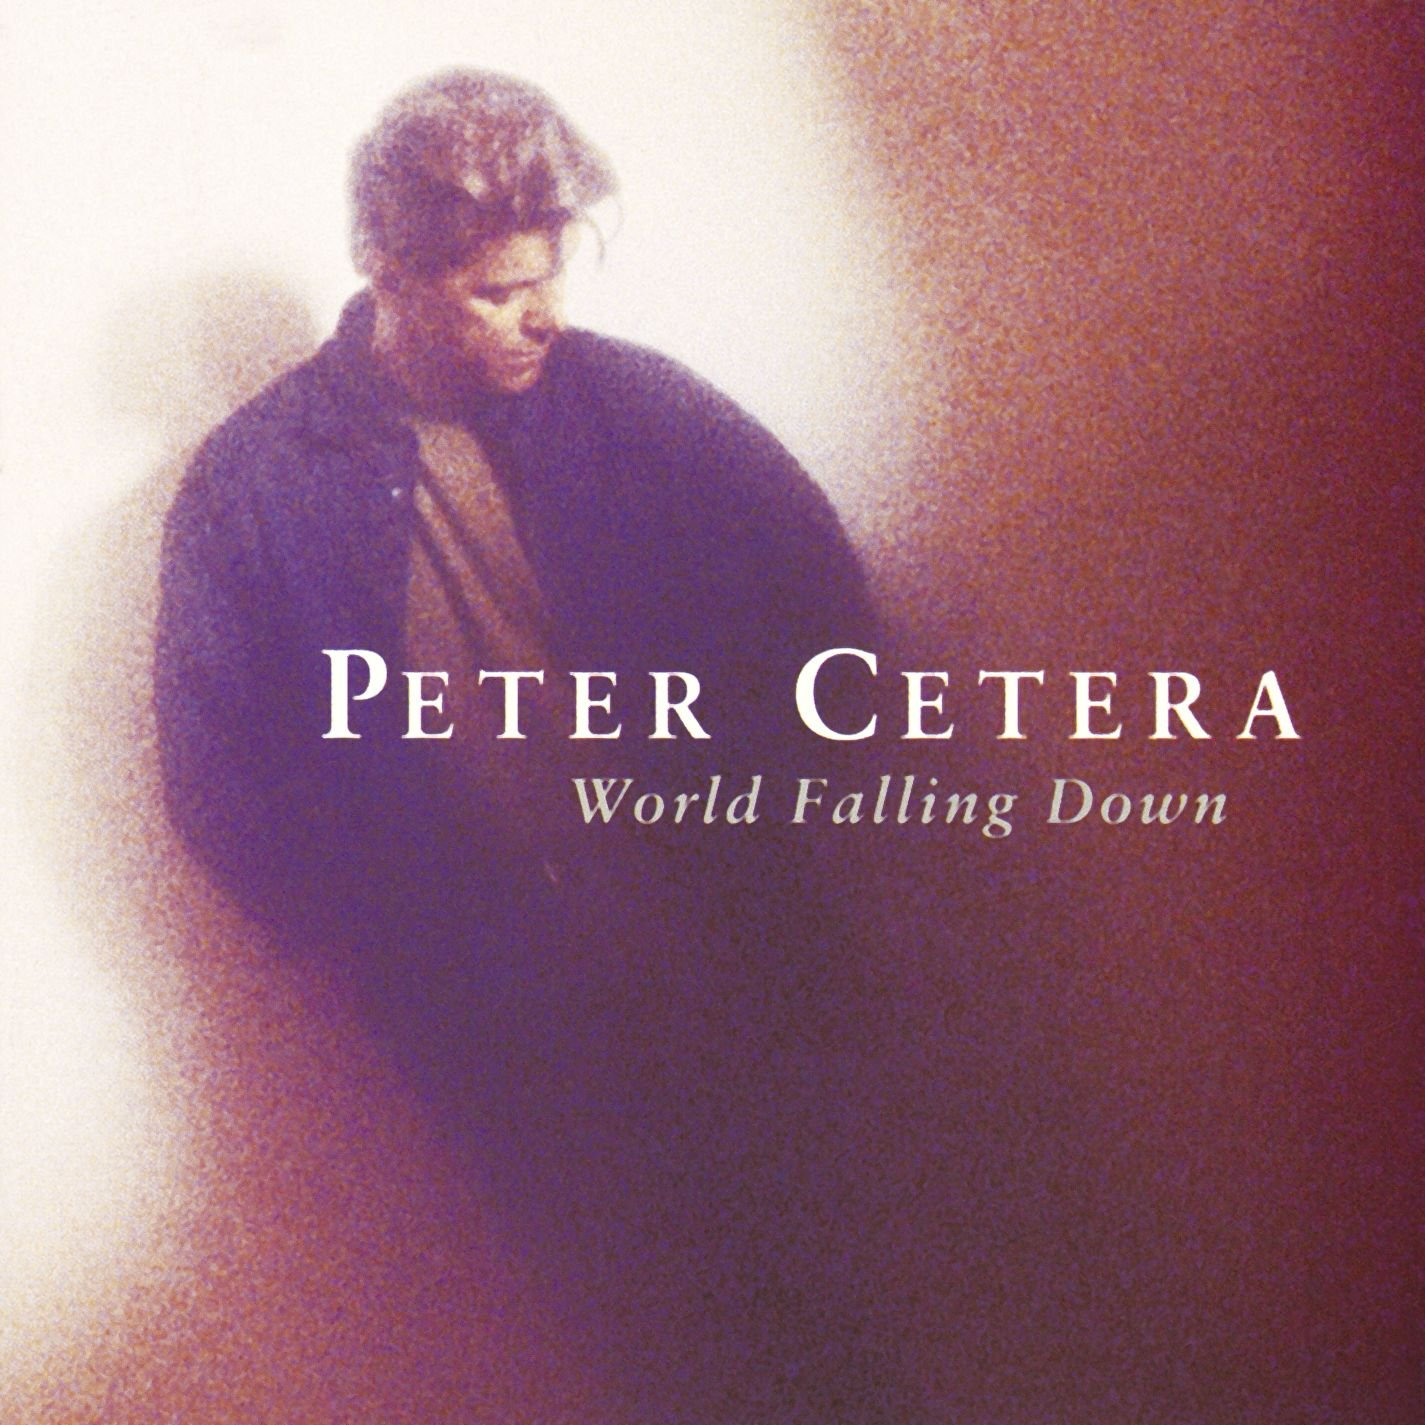 Peter Cetera - World Falling Down (1992) [FLAC] Download